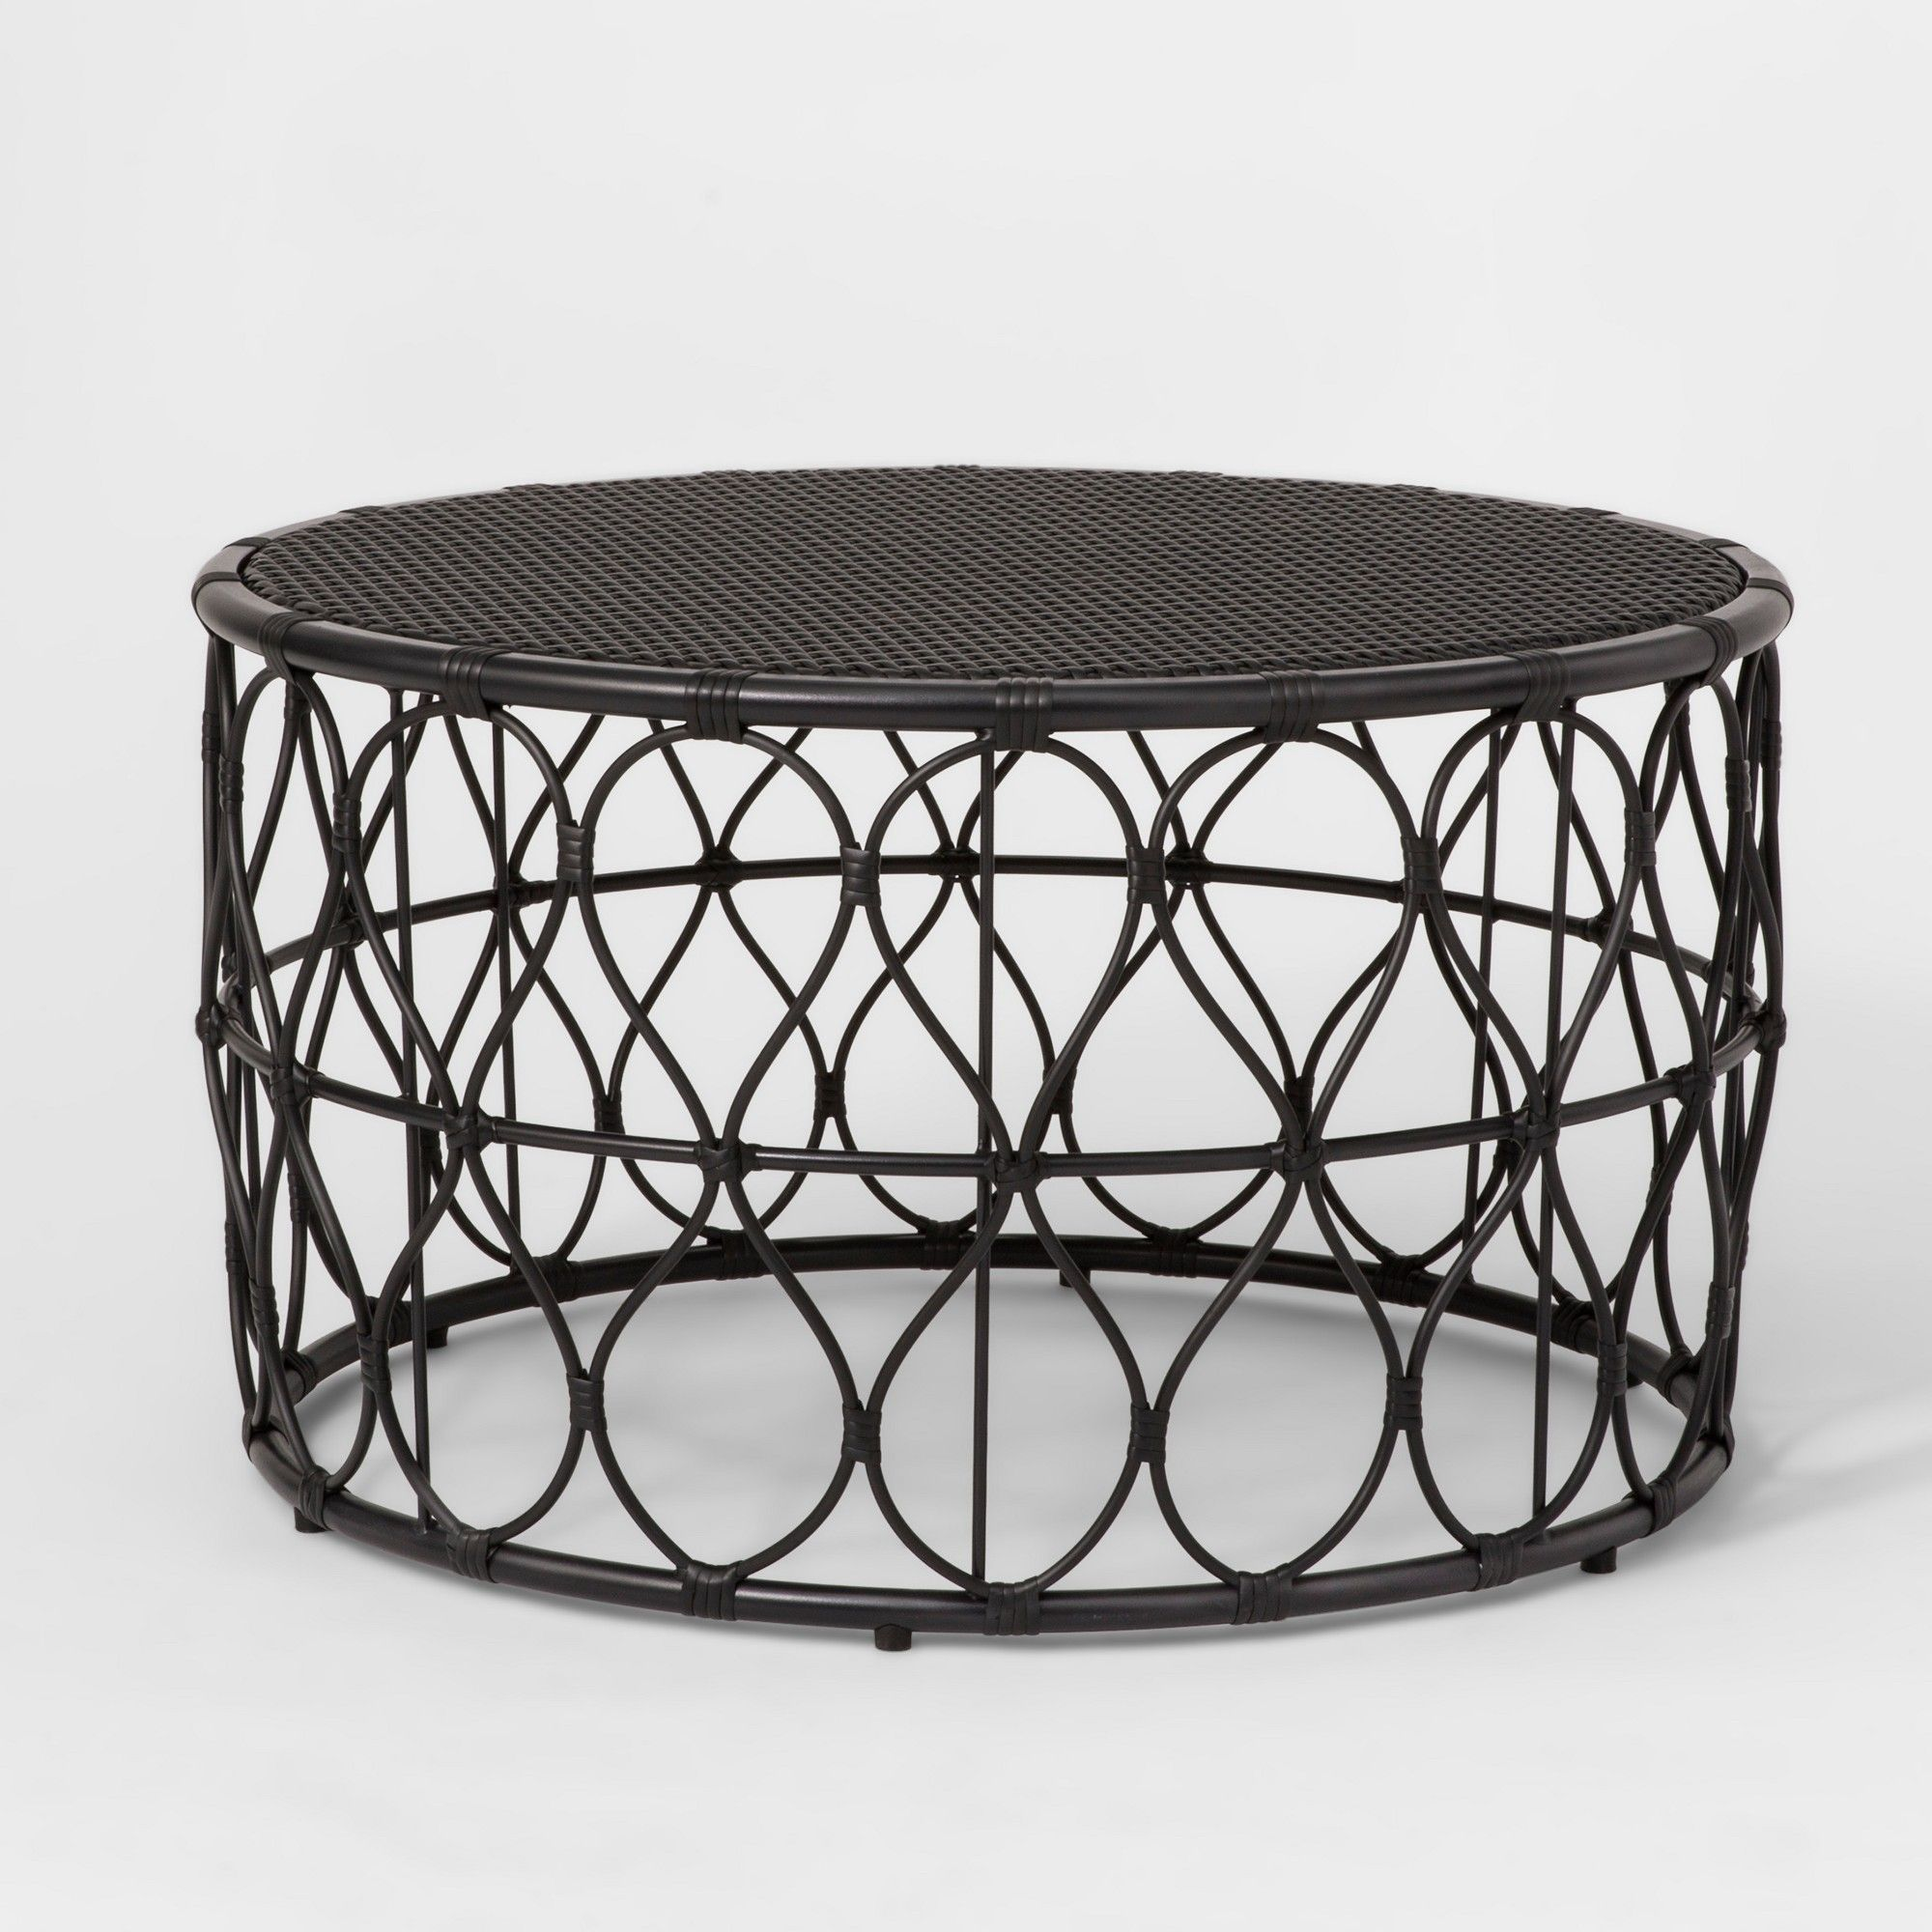 Two Black Coffee Tables To Be Placed In The Middle Of The Couch